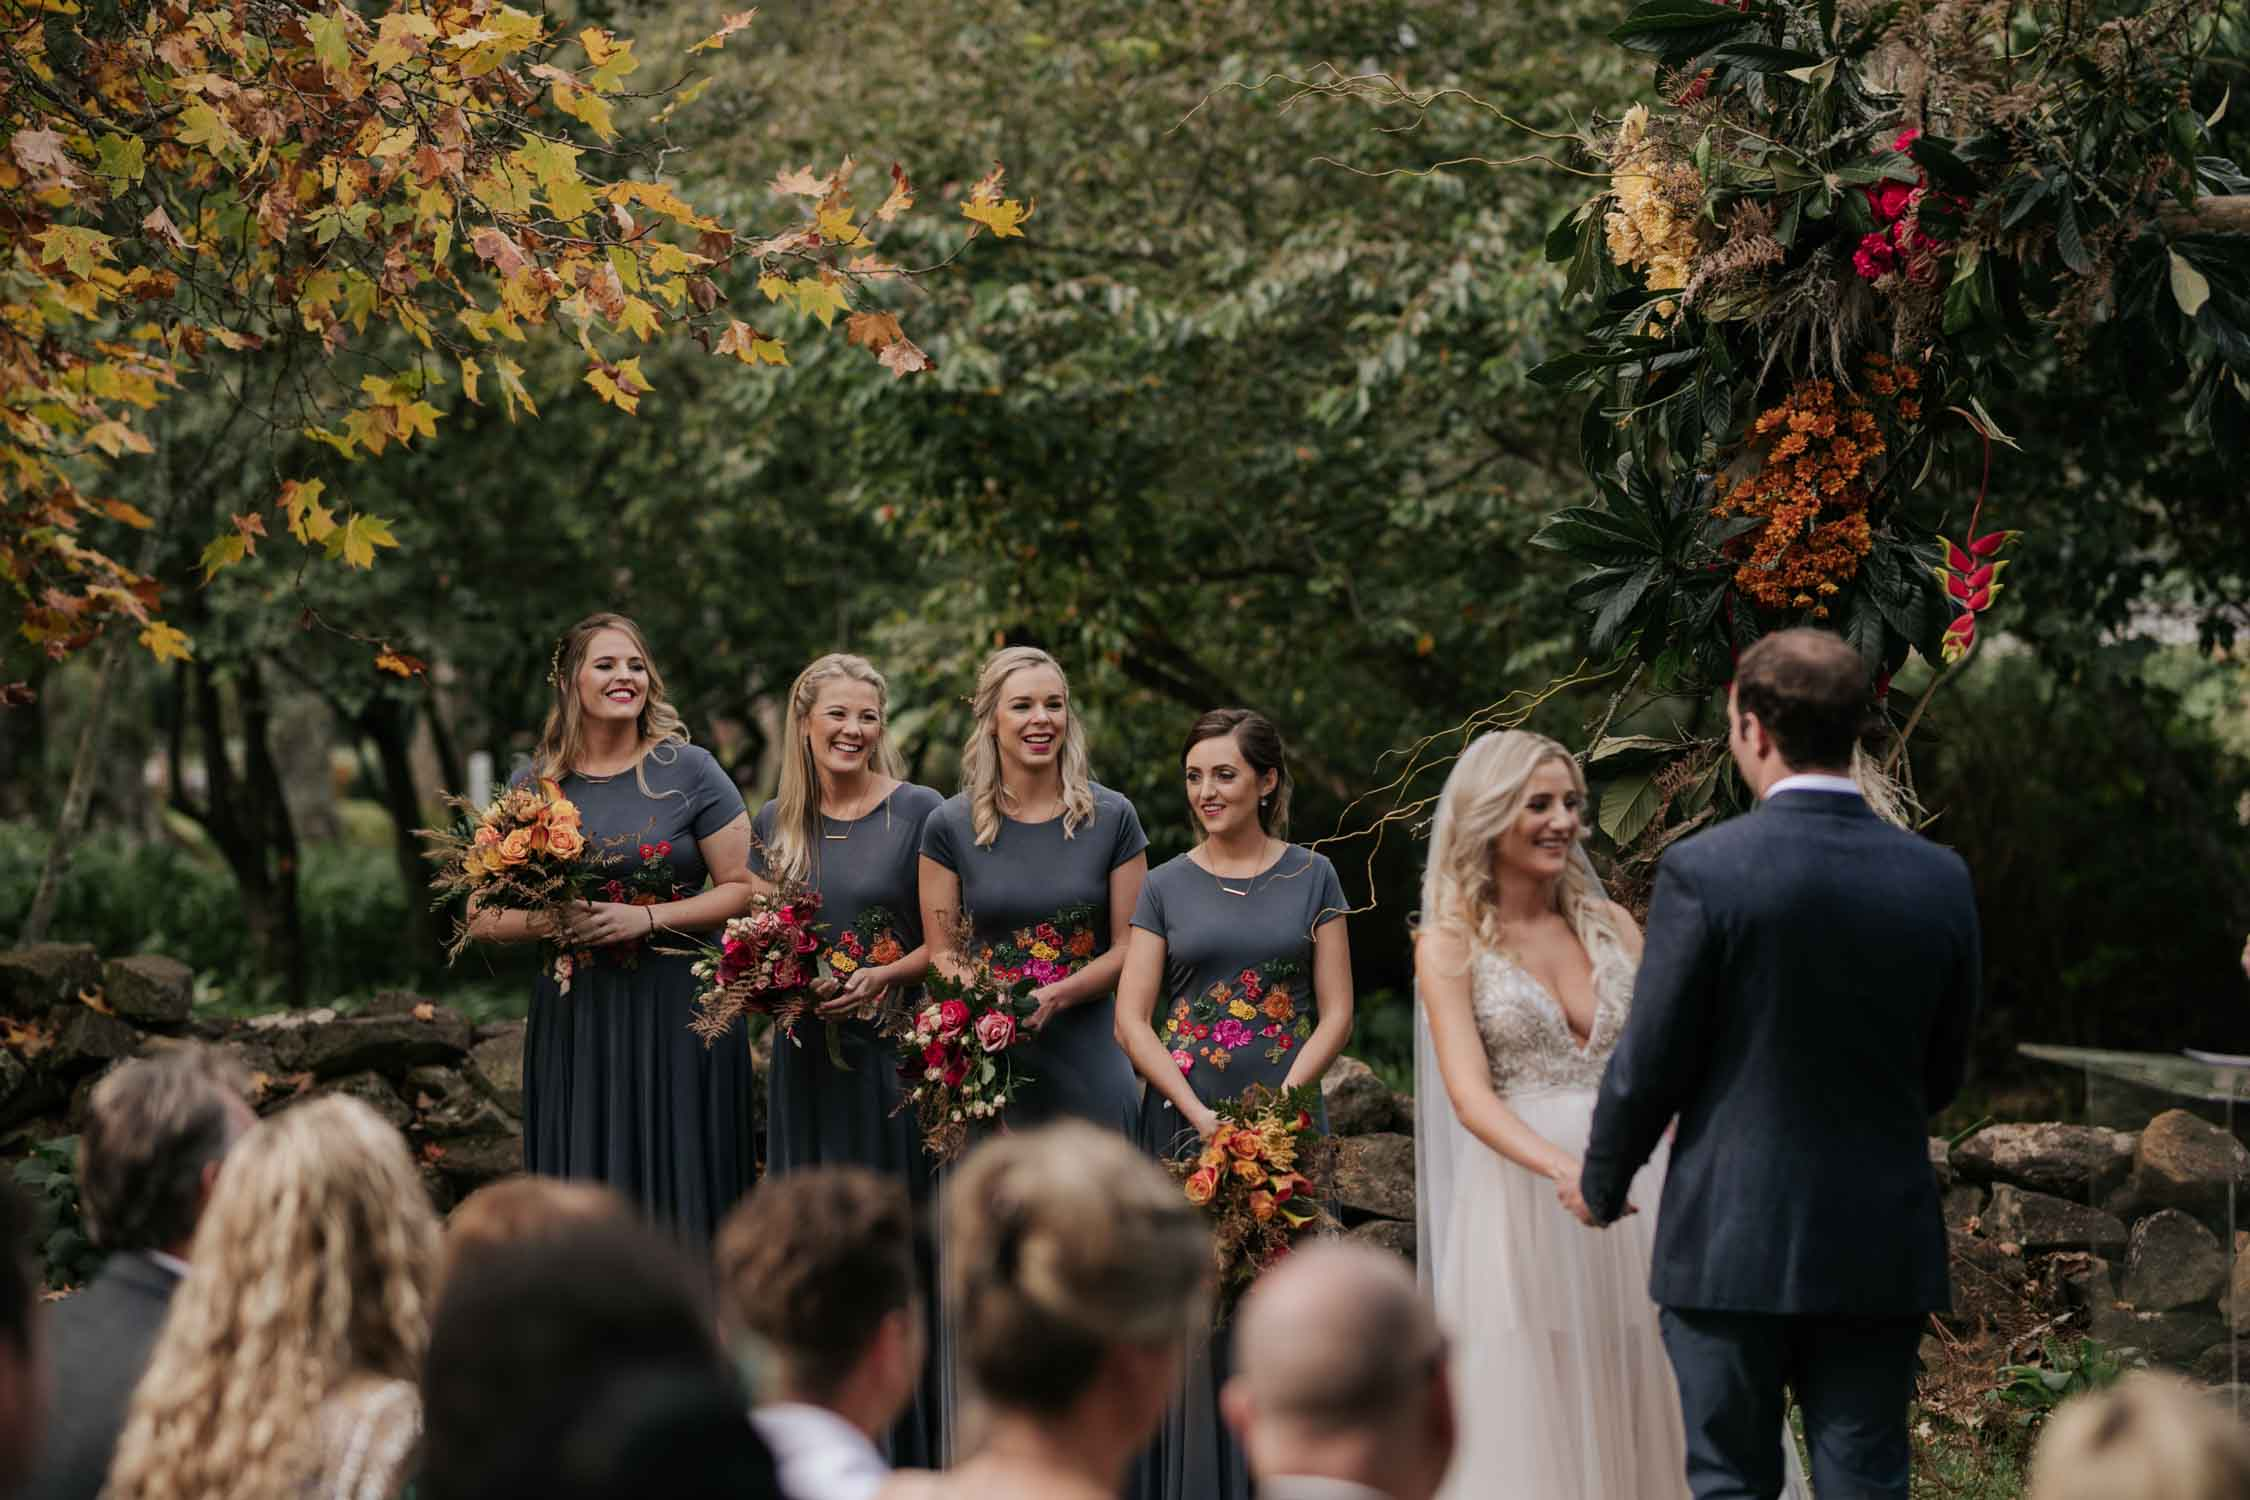 Bridesmaids standing in front at wedding ceremony watching the bride and groom say vows. Bridesmaids are wearing tight grey wedding dresses with high necklines. Bride wearing a low cut dress with beautiful and detailed beadwork with a skirt that is see through and cute shorts underneath almost like a jump suit underneath a wedding dress. She is holding a wedding bouquet of burnt orange pink and red flowers and roses with dried ferns and grass in it.